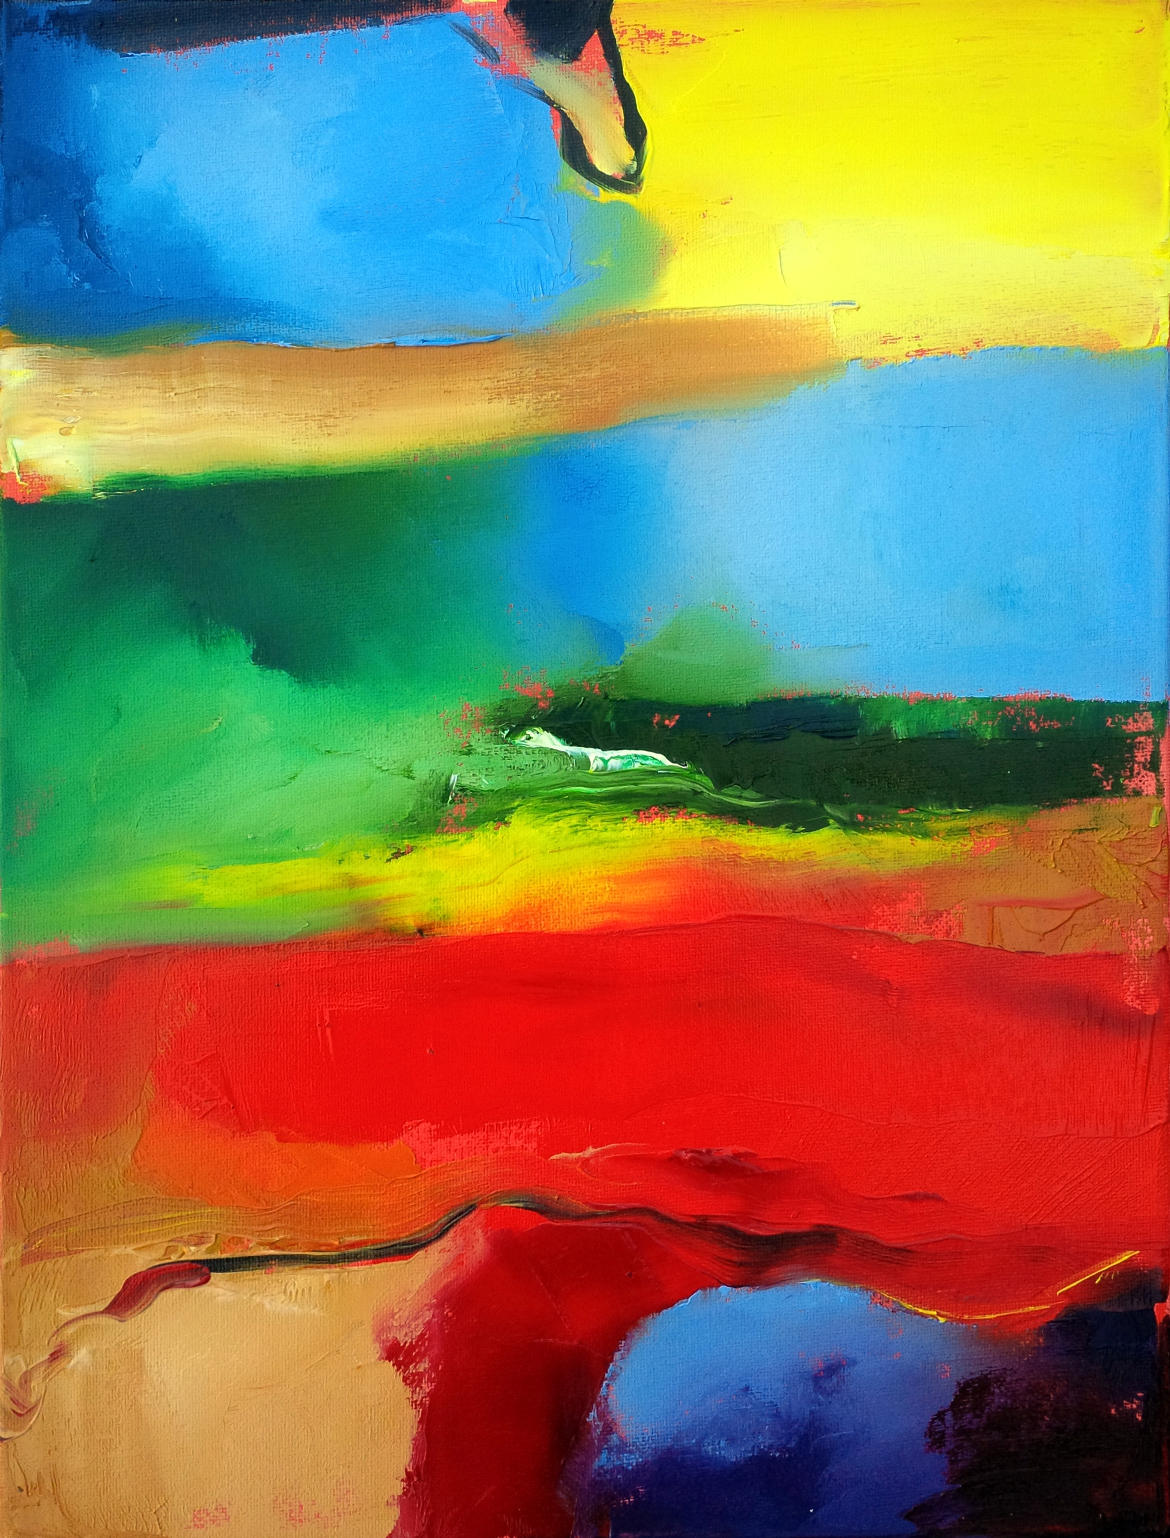 Abstract art painting titled 'Red River' by Mark Gisbourne